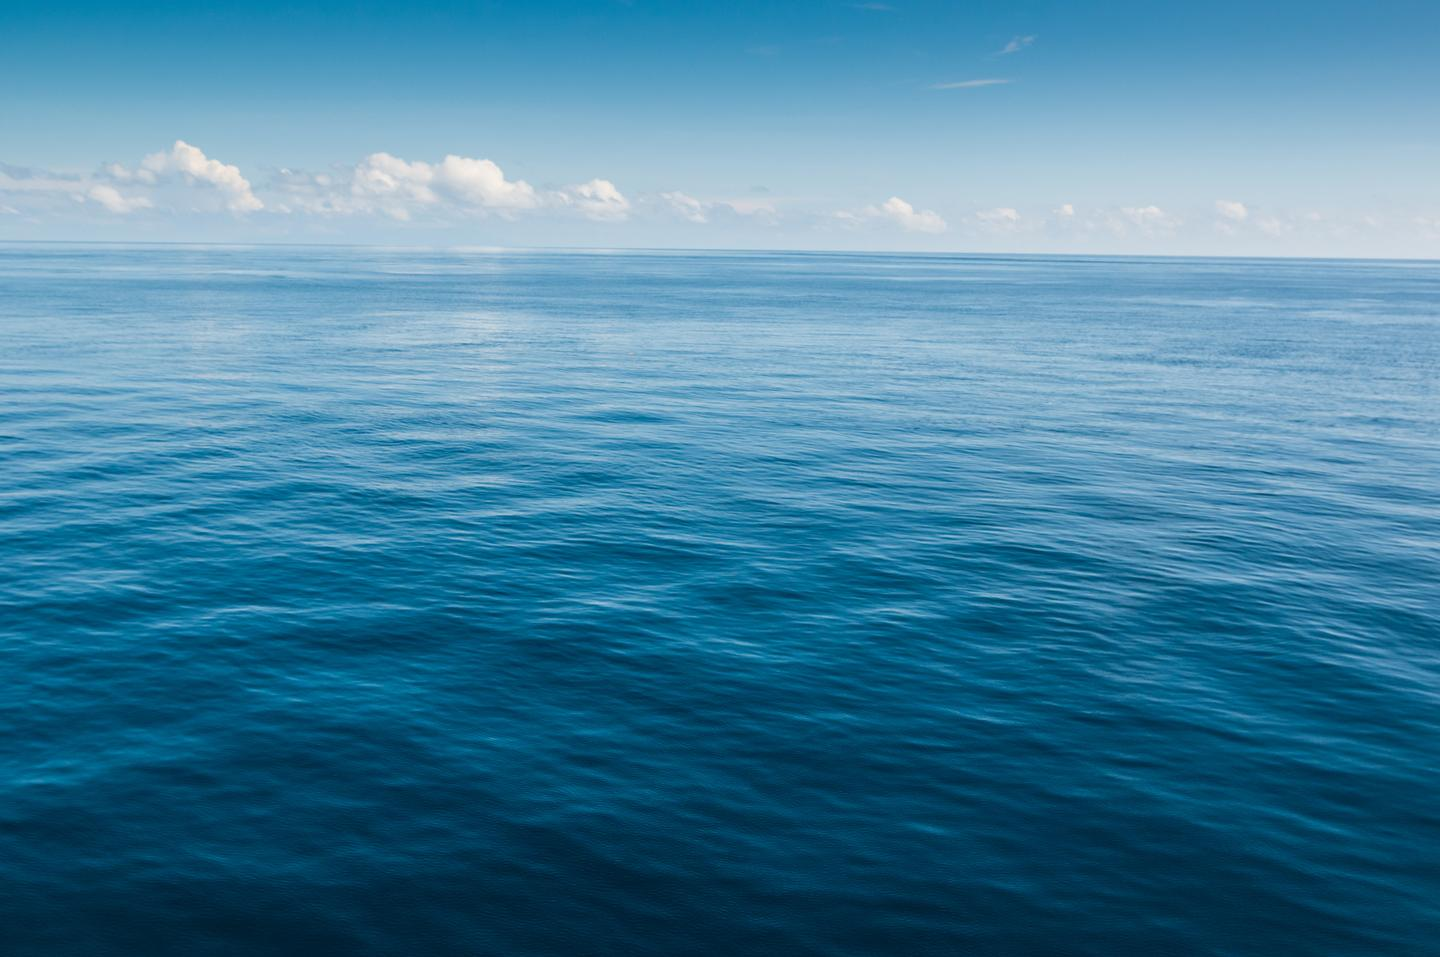 New research suggests we may have been underestimating the role the ocean plays in soaking up CO2 from the atmosphere